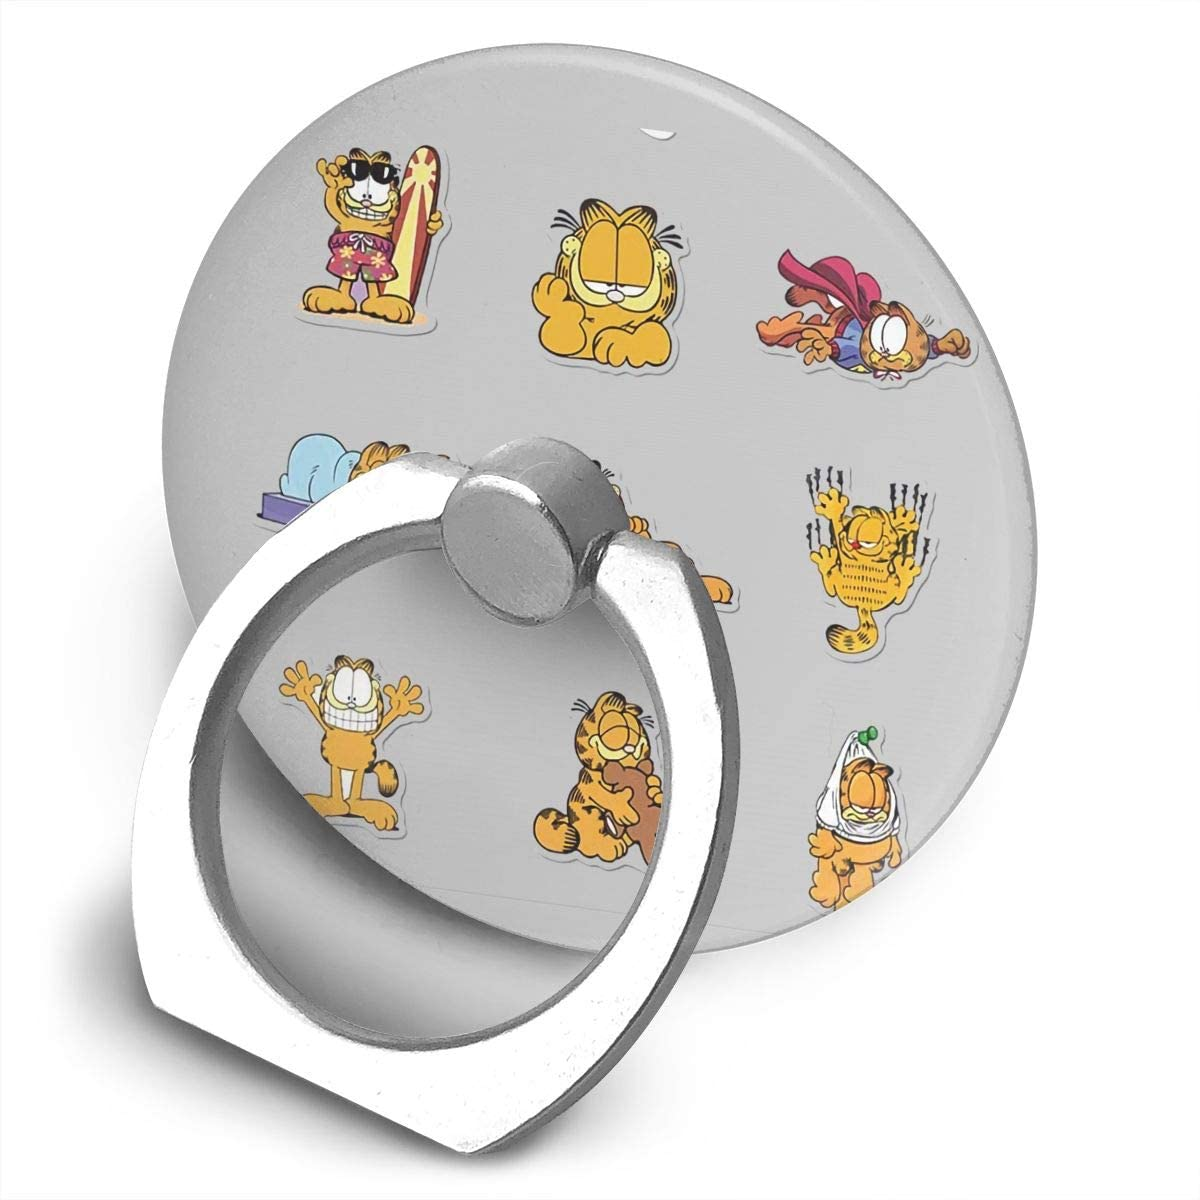 Garfield Alloy Mobile Phone Ring Bracket,360 Degree Rotating Ring Stand Grip Mounts